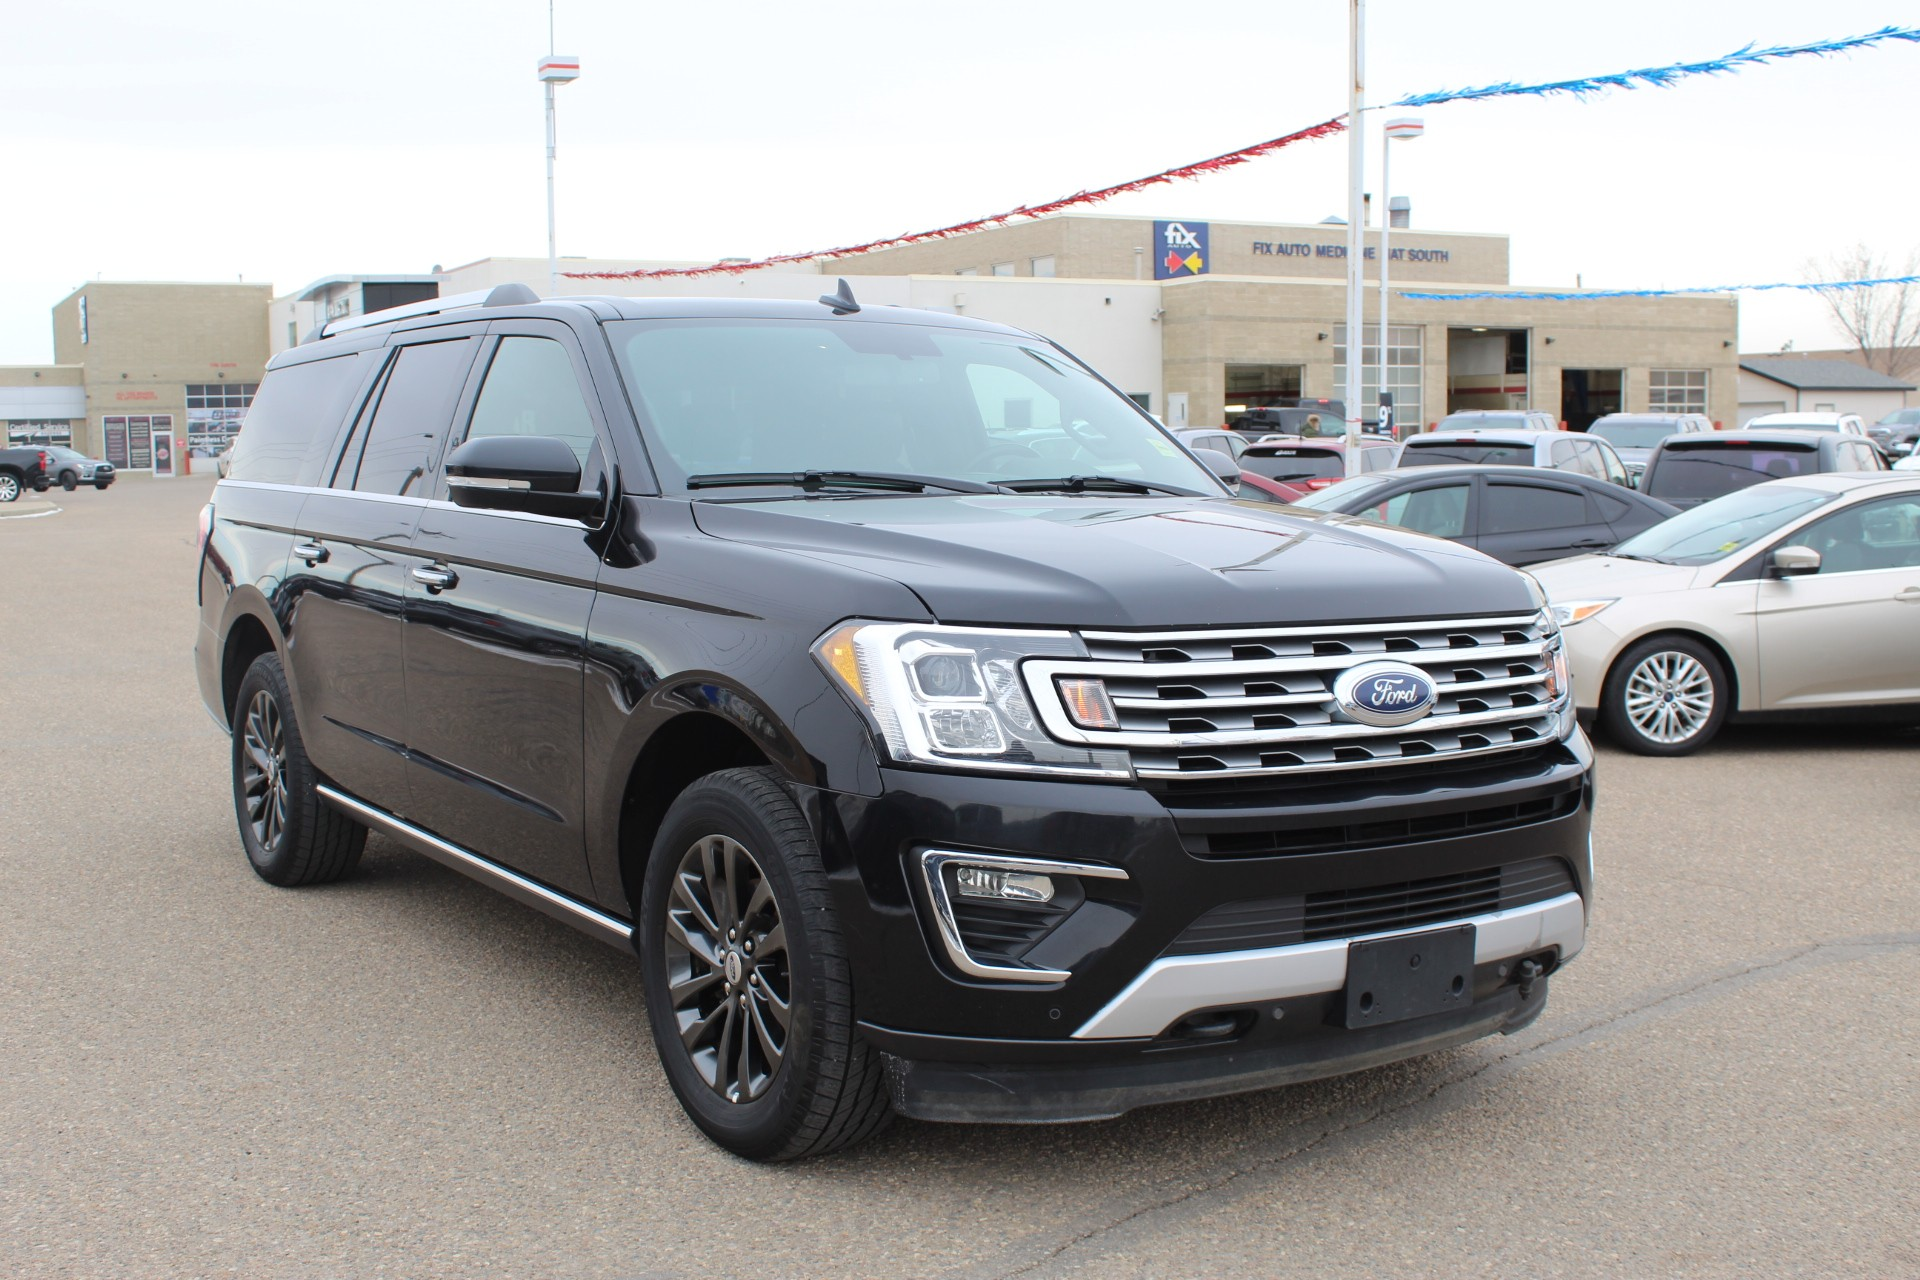 2019 Ford Expedition Max Limited - 65,490km